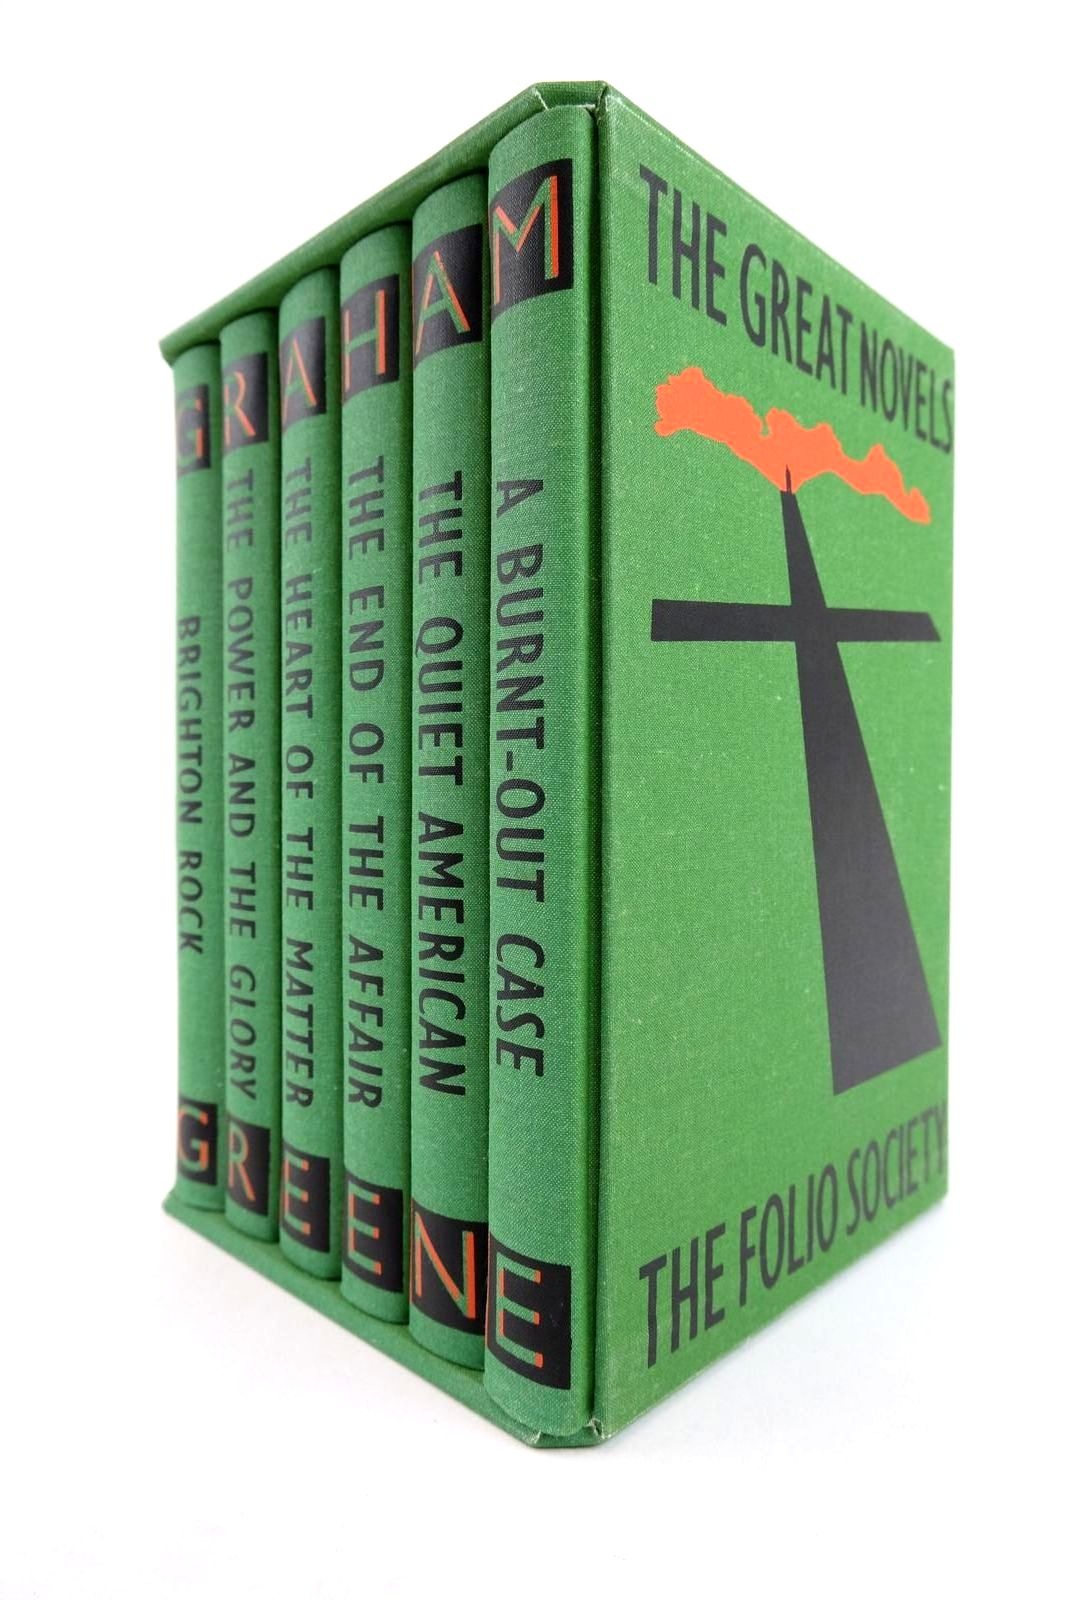 Photo of THE GREAT NOVELS written by Greene, Graham illustrated by Grandfield, Geoff published by Folio Society (STOCK CODE: 2133168)  for sale by Stella & Rose's Books